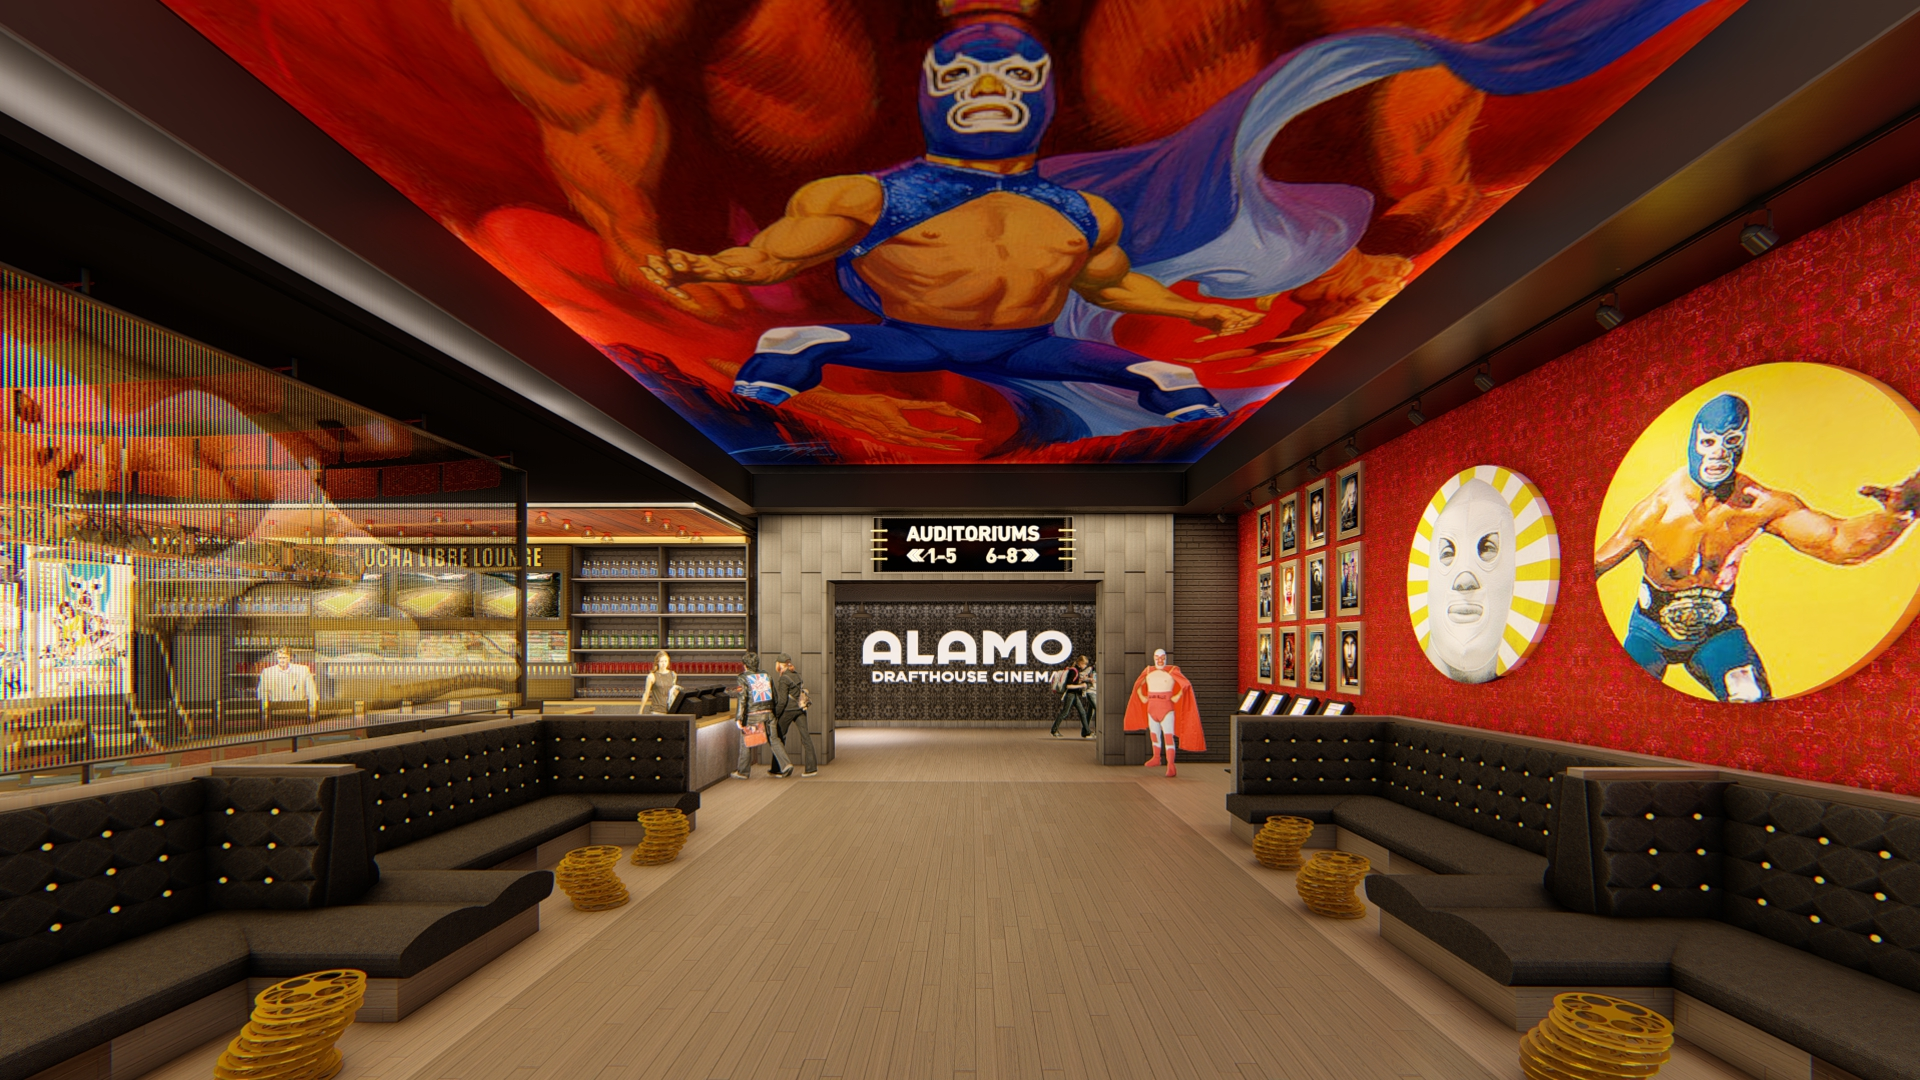 Alamo Drafthouse Cinema East El Paso